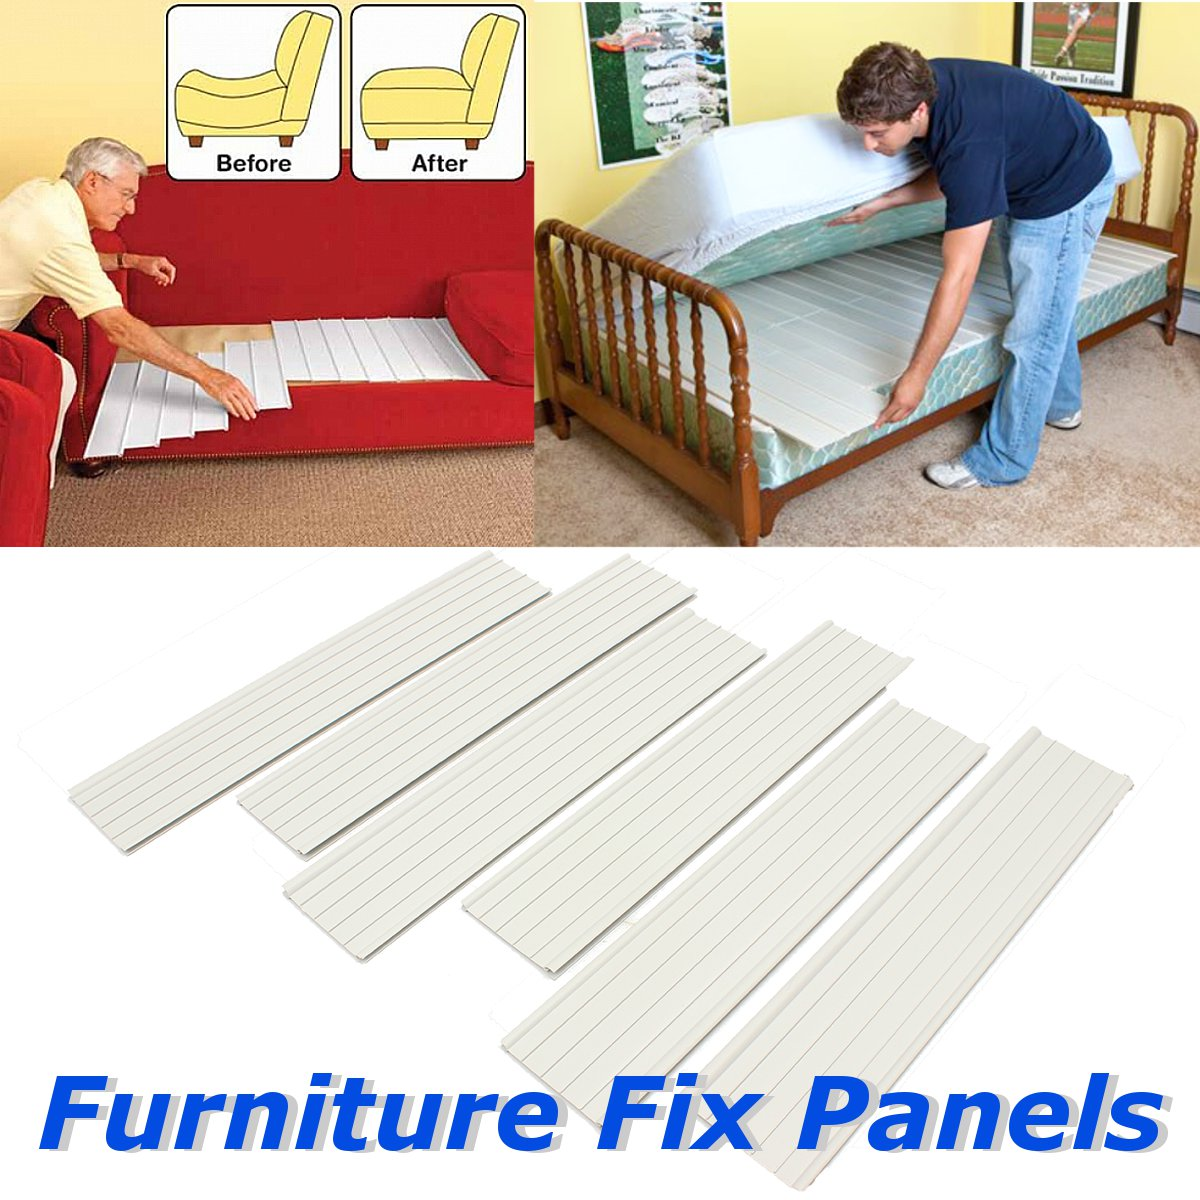 6PCS Furniture Sofa Support Cushion Fix Panels Quick Fix Support Cushions Pads For Sectional Sofa Seat Sagging Furniture Parts